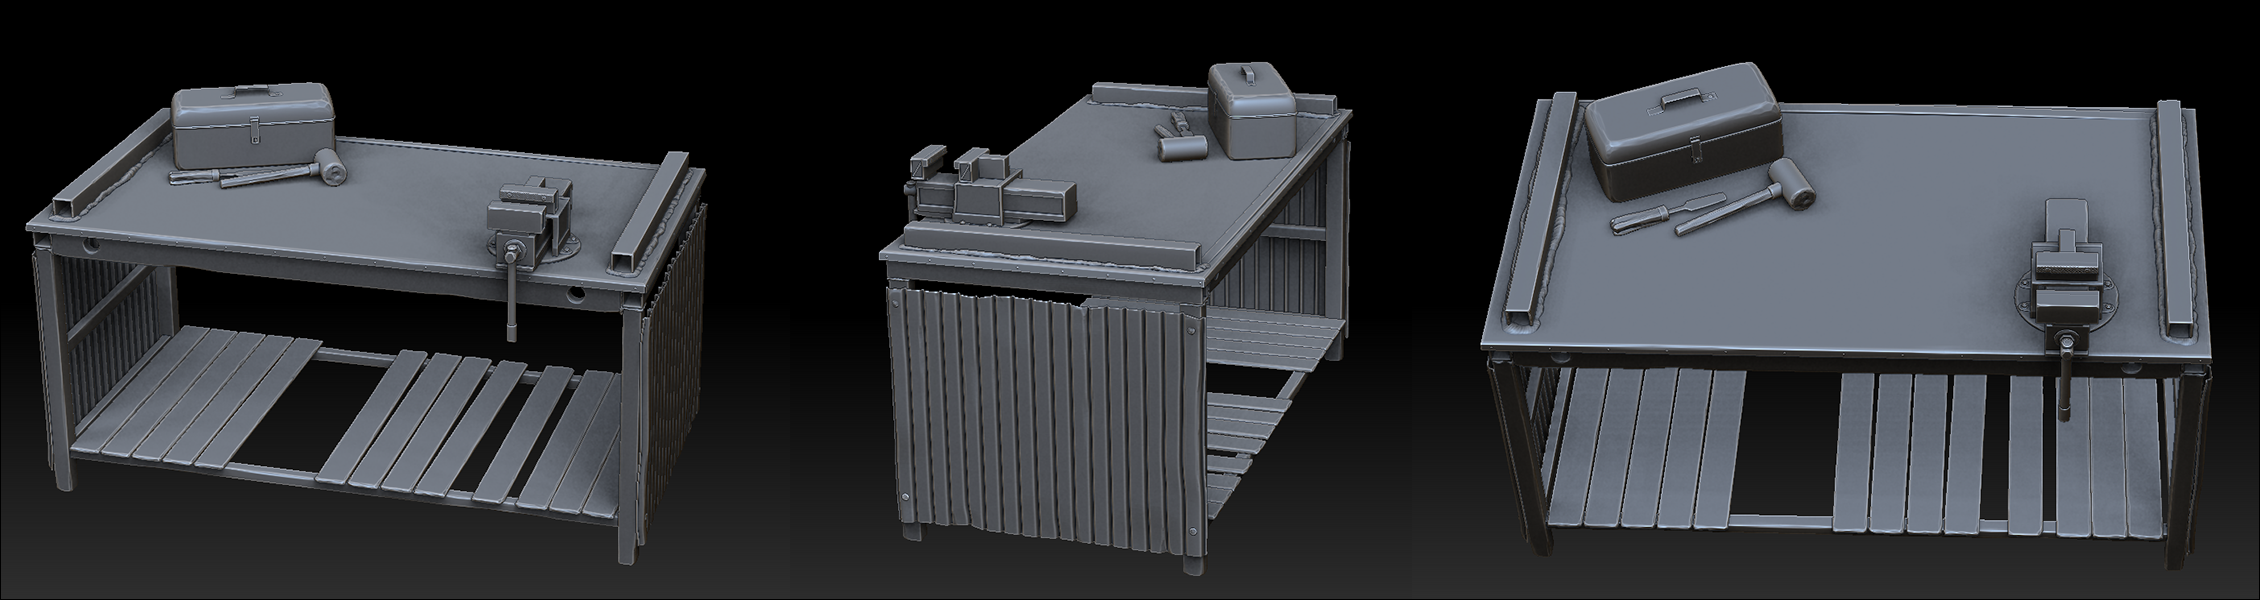 bench_2_wip.png